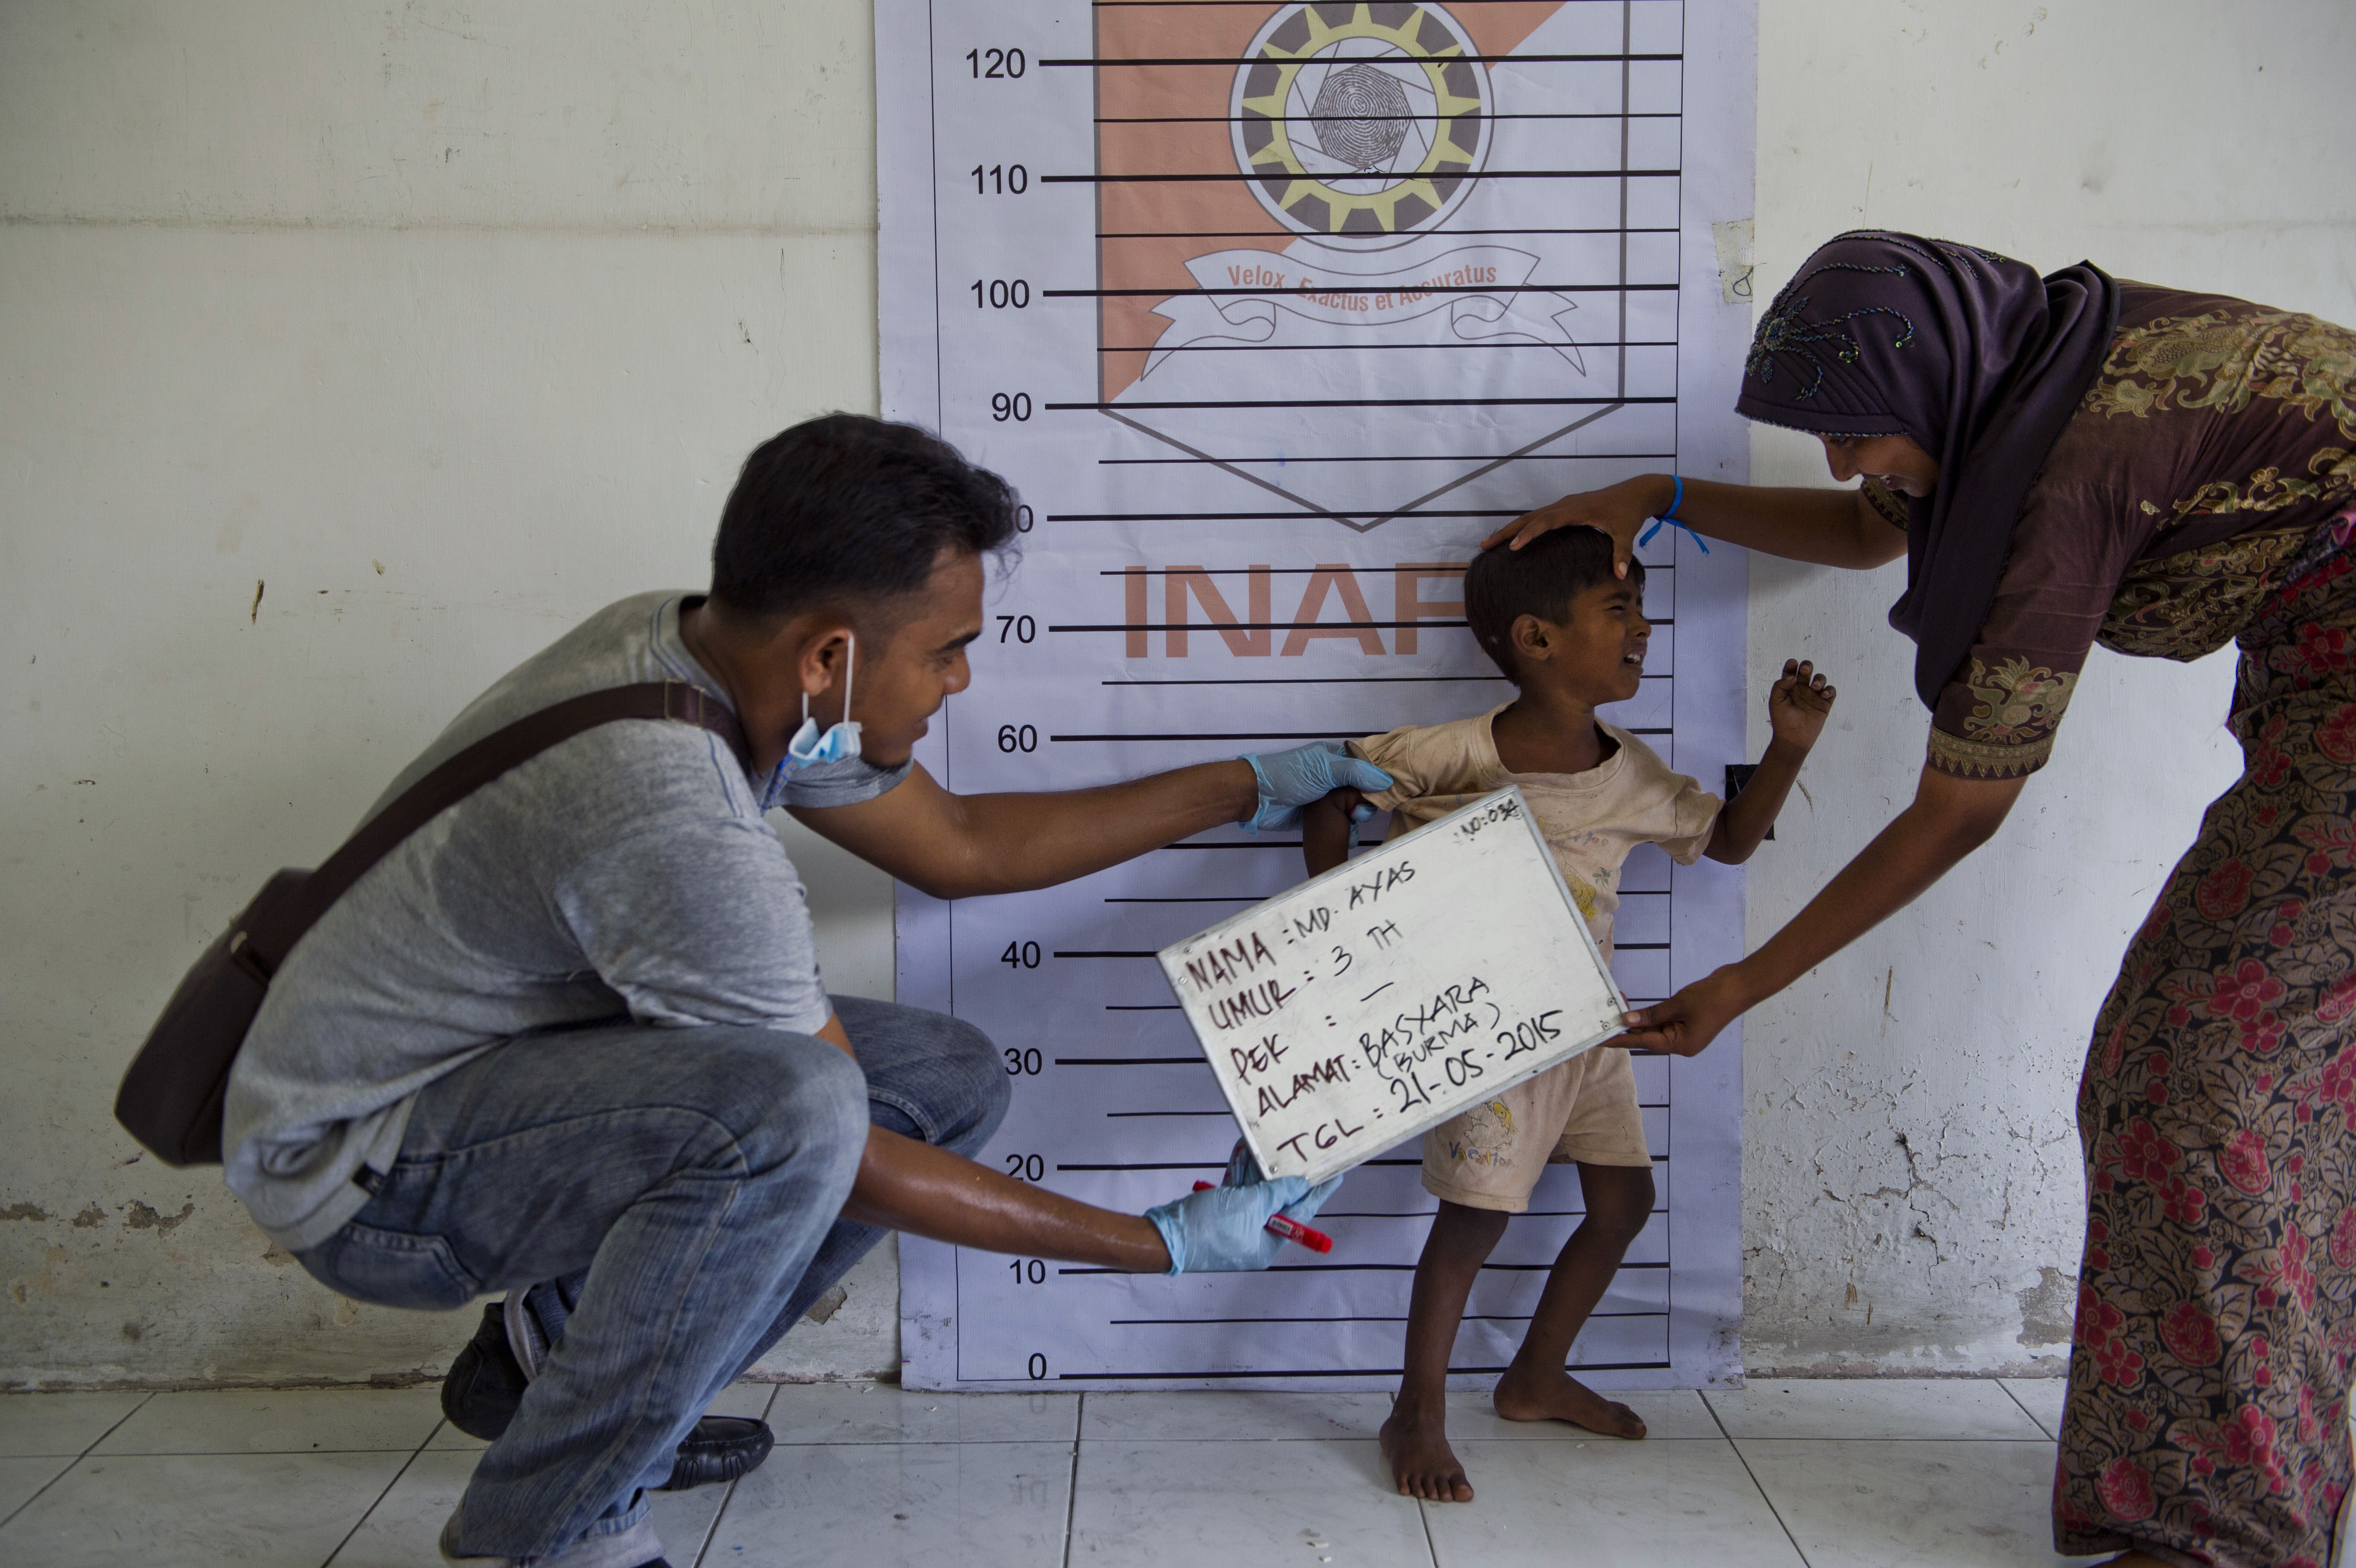 "To go with ""SEAsia migrants Indonesia"", Focus by Olivia RondonuwuIn this picture taken on May 21, 2015, a Rohingya boy (C) from Myanmar is photographed during police identification procedures at a newly set up confinement area in Bayeun, Aceh province after more than 400 Rohingya migrants from Myanmar and Bangladesh were rescued by Indonesian fishermen off the waters of the province on May 20. Boat people who have come ashore in Southeast Asia after harrowing journeys are delighted that Indonesia and Malaysia will give them temporary shelter -- although some were baffled by an offer of sanctuary in a tiny African nation they had never heard of. There was some confusion over an offer from the impoverished West African nation of Gambia to take in all Rohingya migrants as part of its ""sacred duty"" to alleviate the suffering of fellow Muslims. AFP PHOTO / ROMEO GACAD (Photo credit should read ROMEO GACAD/AFP/Getty Images)"